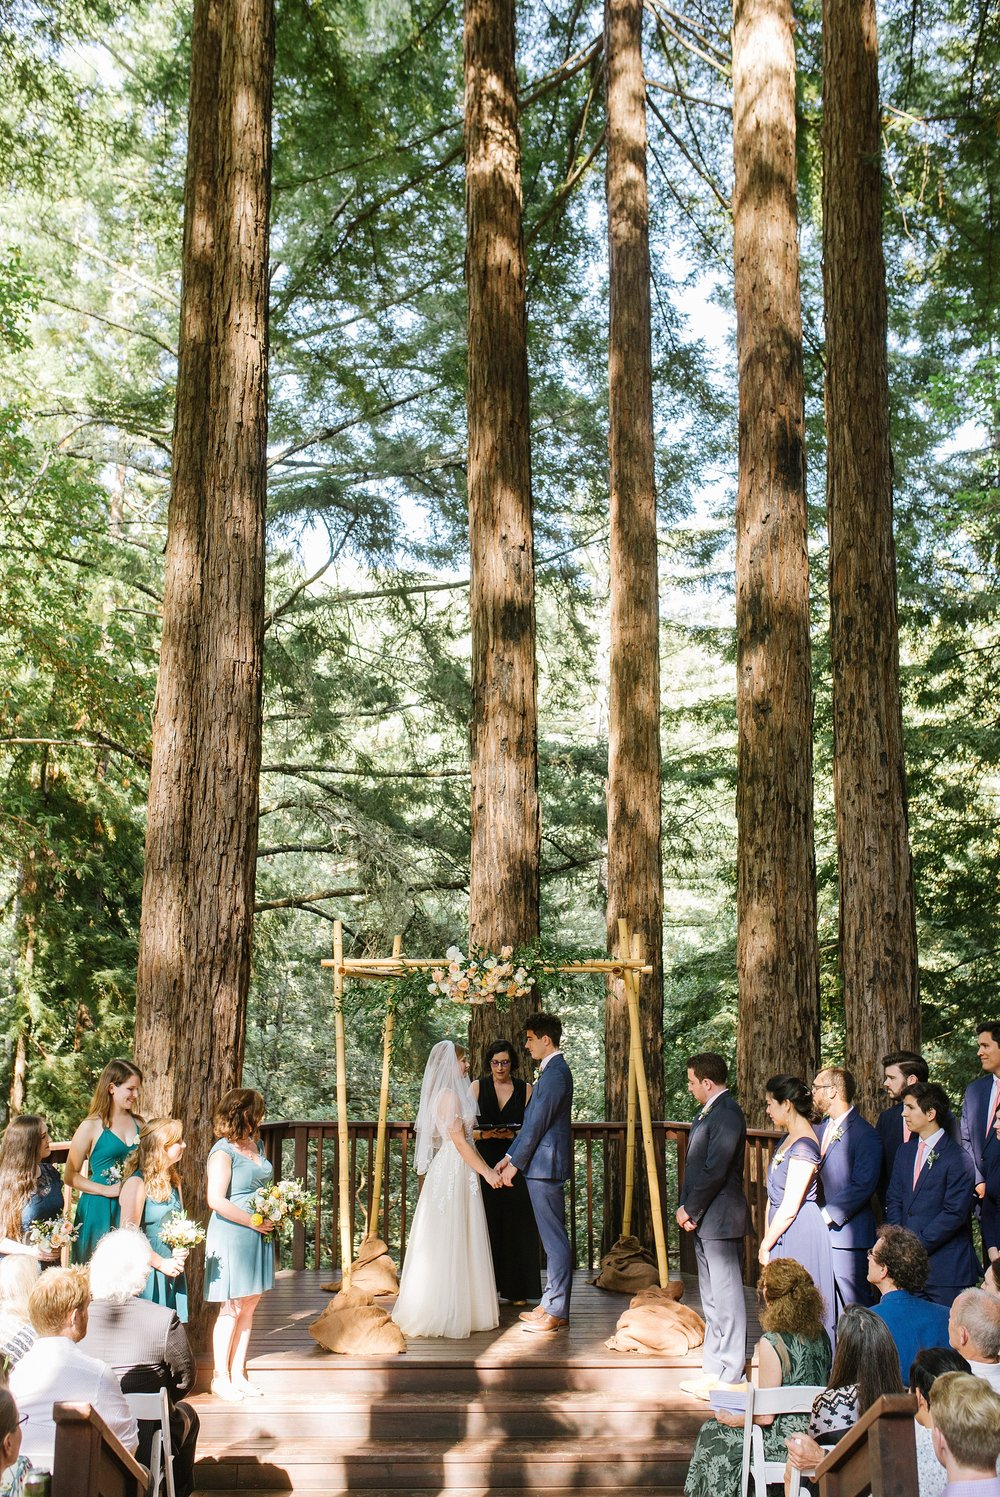 Amphitheatre-of-the-Redwoods-wedding-erikariley_chelsea-dier-photography_0019.jpg